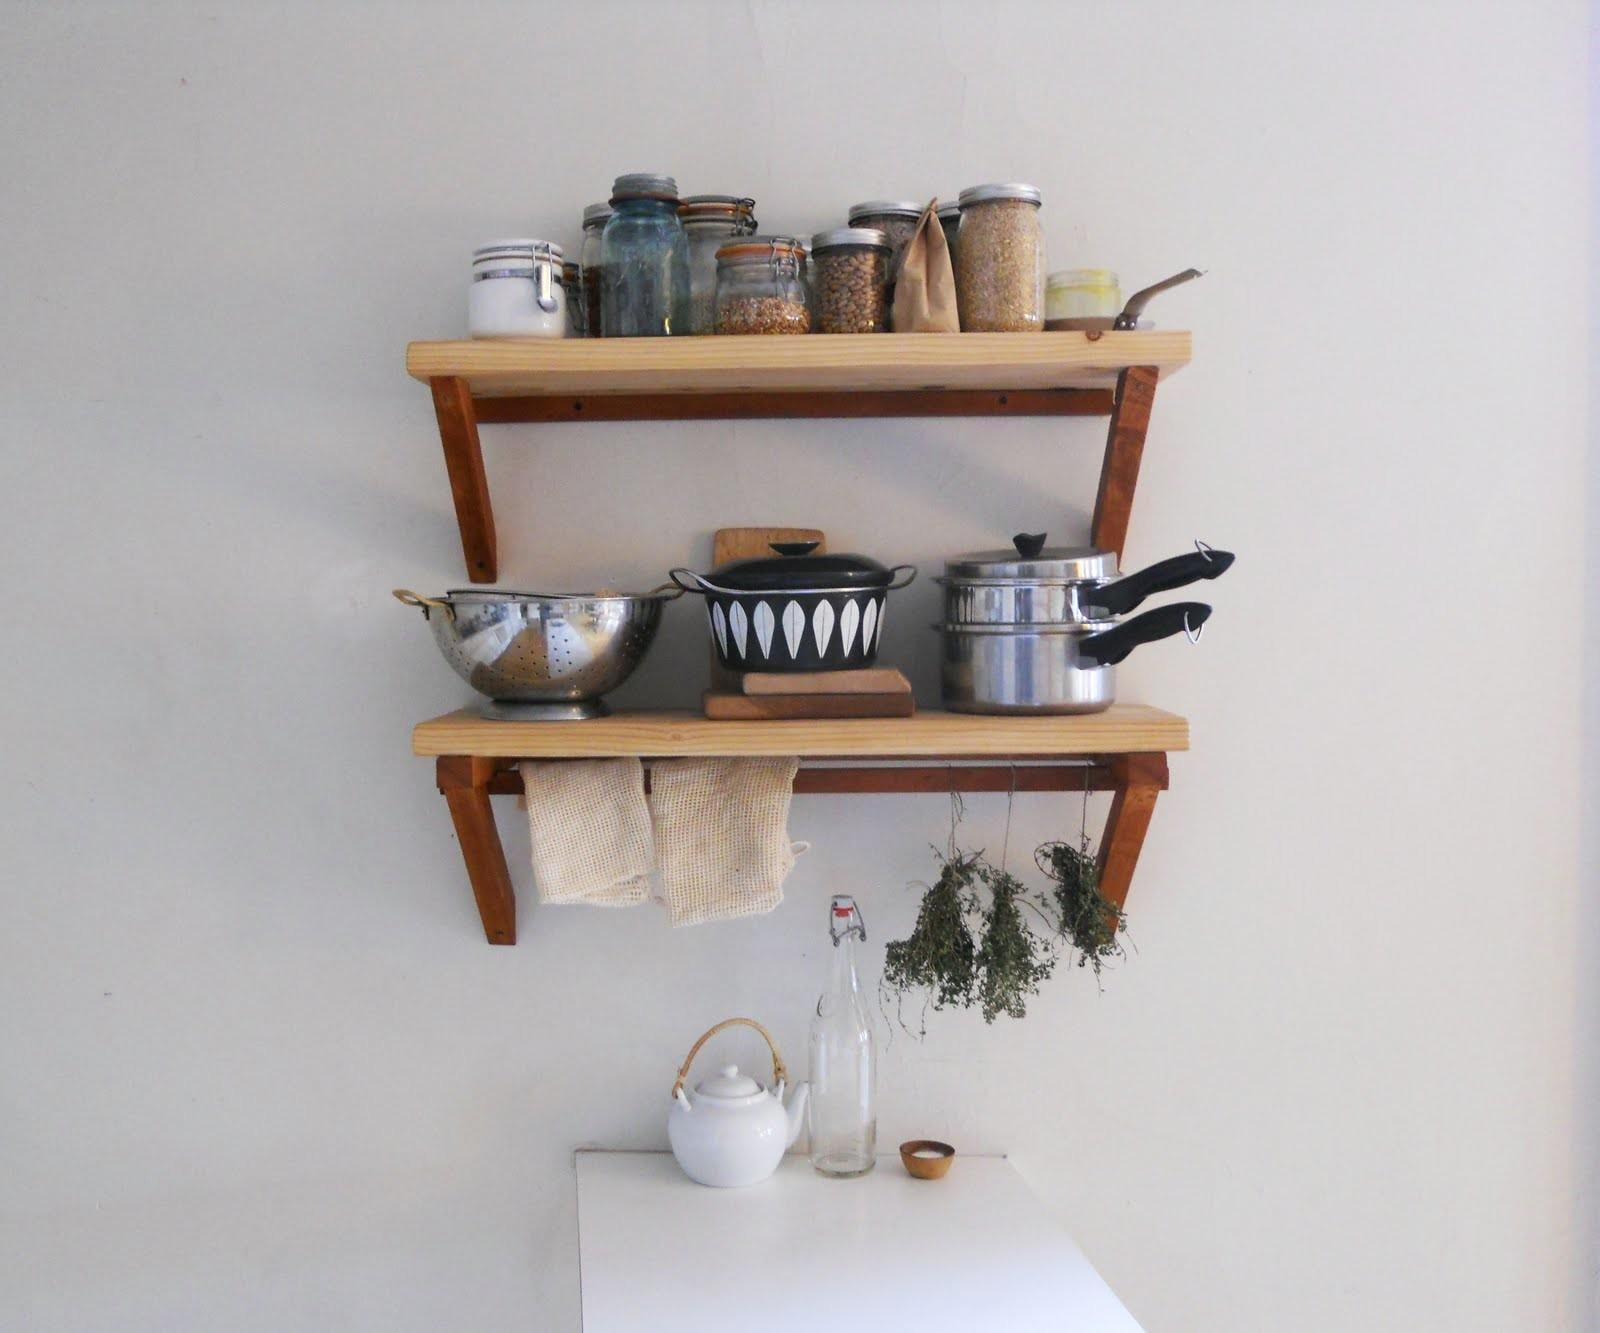 Hudson Walnut Floating Wall Mounted Shelf Kitchen Bath Living Room Shelves Units Furniture Home Garden